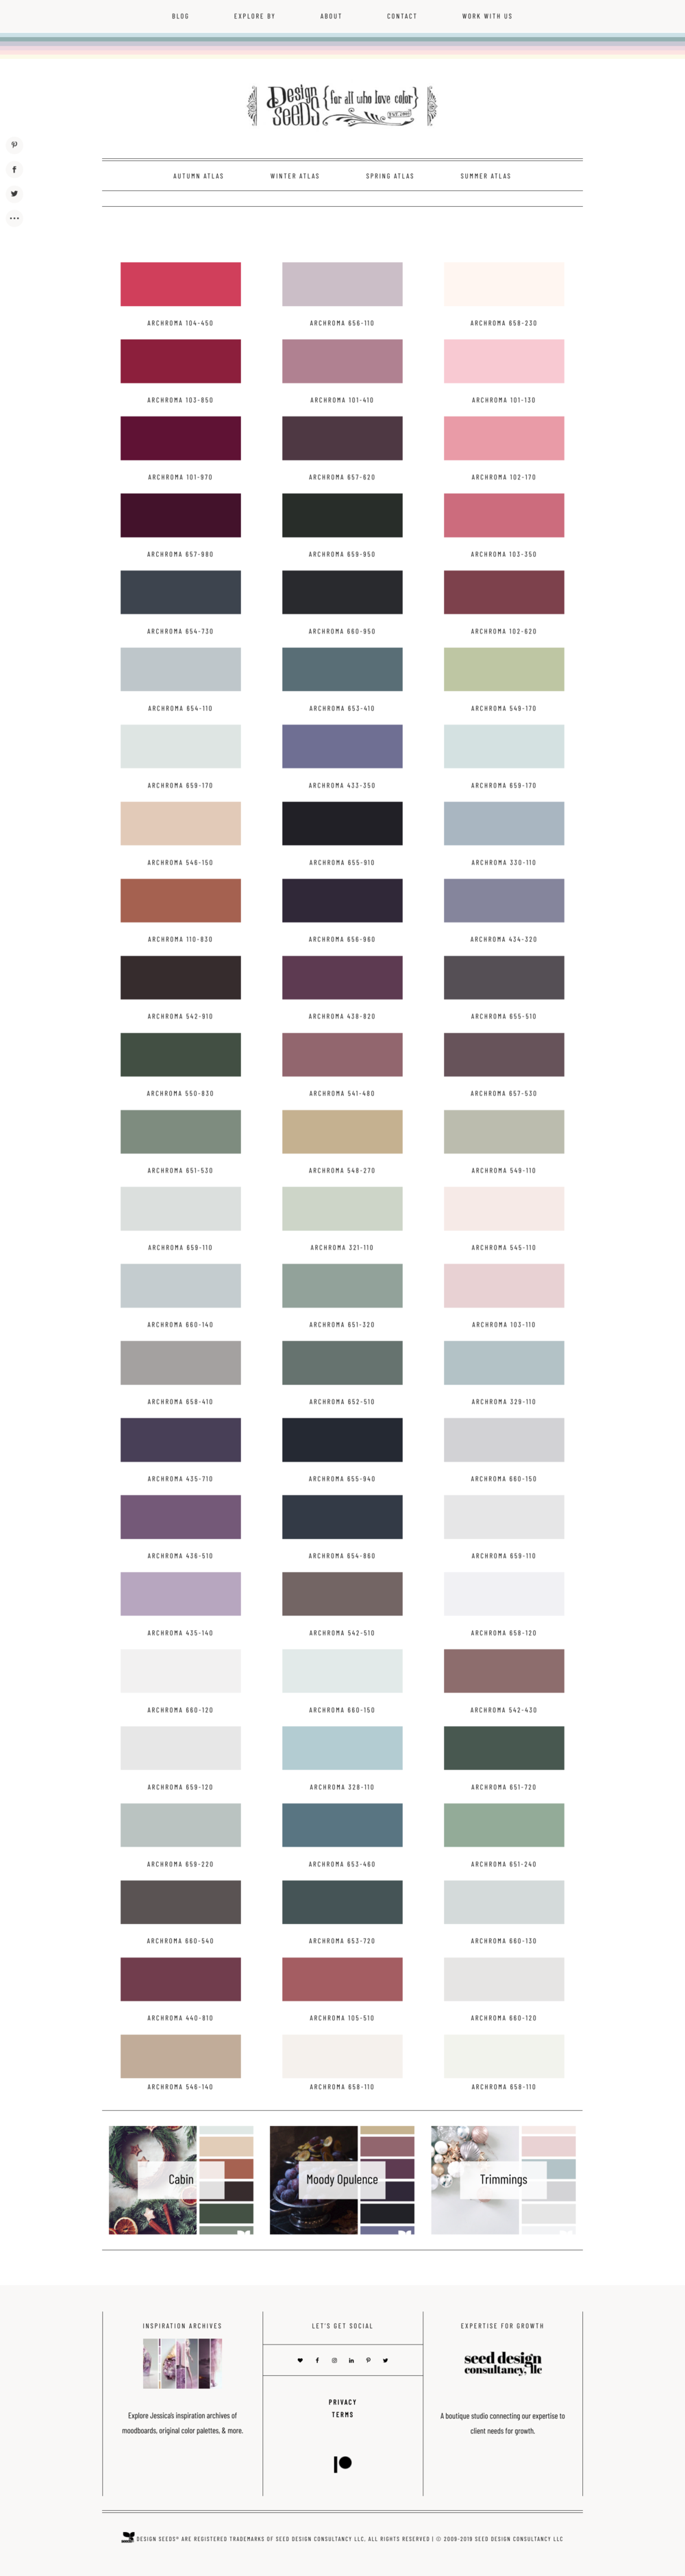 seed; Winter   Issue no.3   palette overview